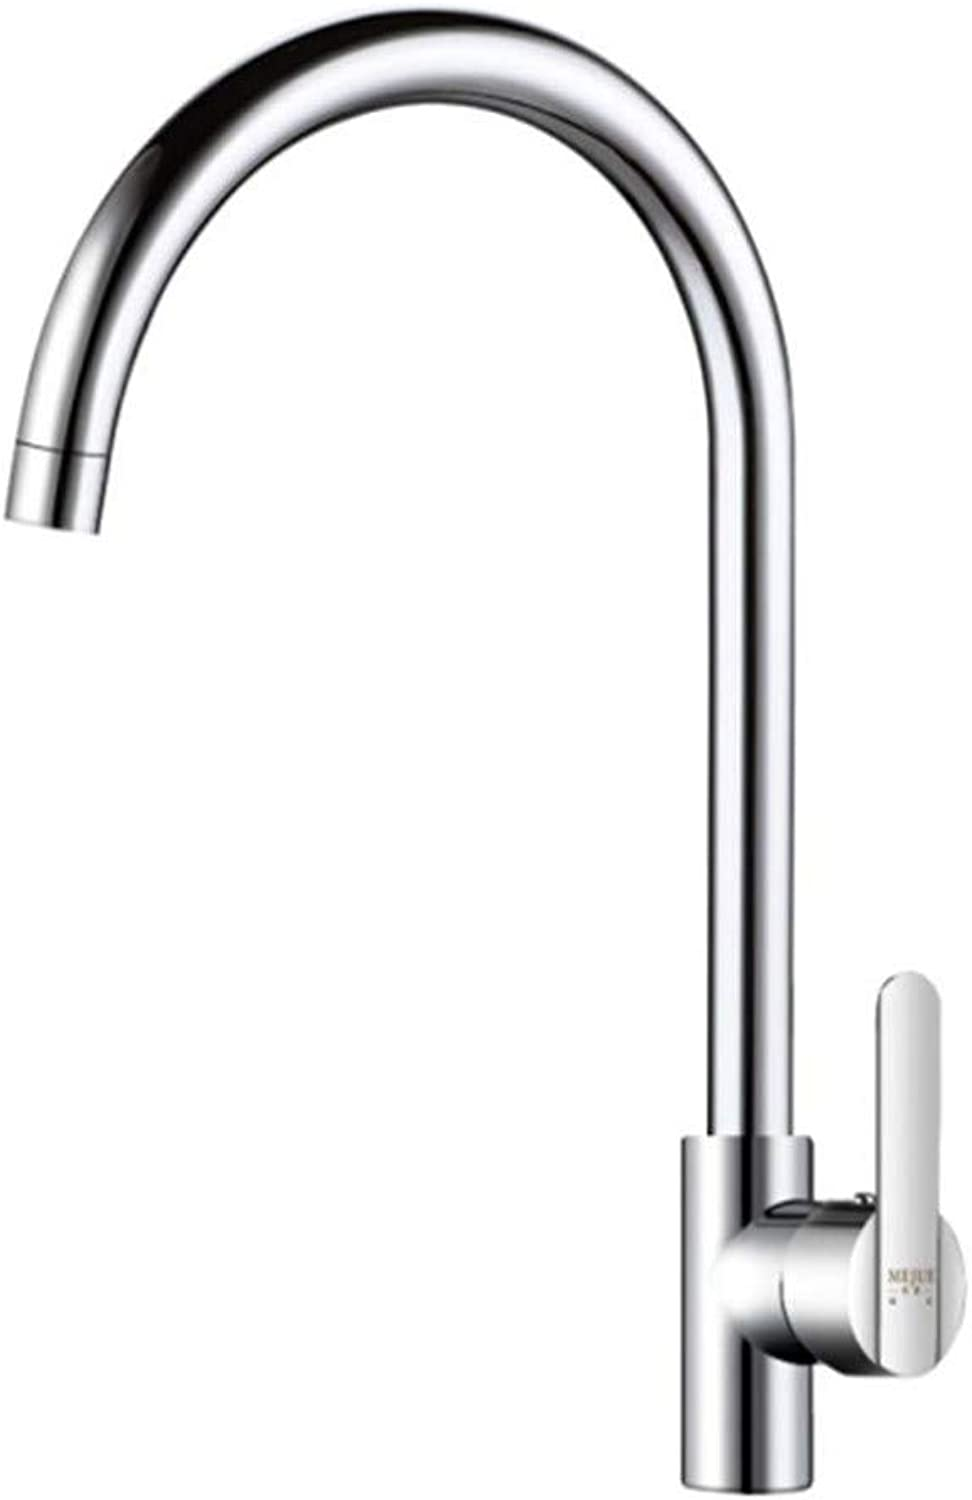 Water Tapdrinking Designer Archcopper Main Body Kitchen Hot and Cold Faucet 360 Degree redating Sink Sink Sink Faucet